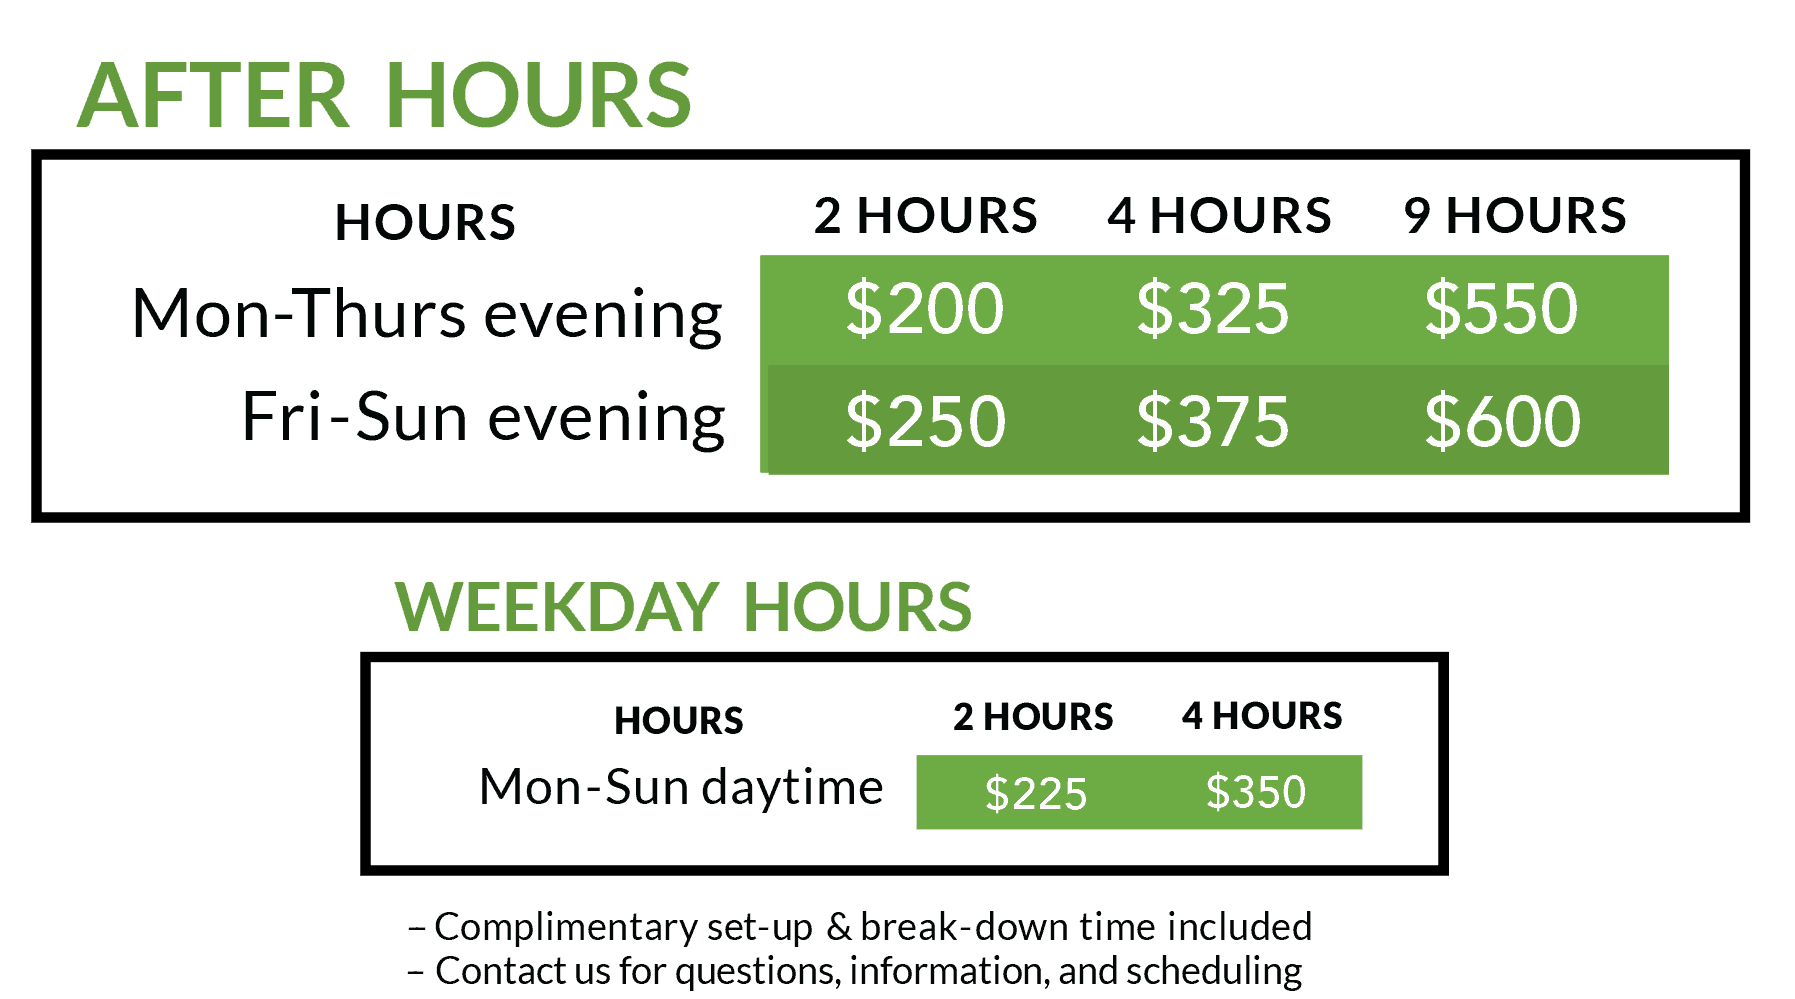 The Lounge can be rented from 7:30am to 11:00pm at the following rates